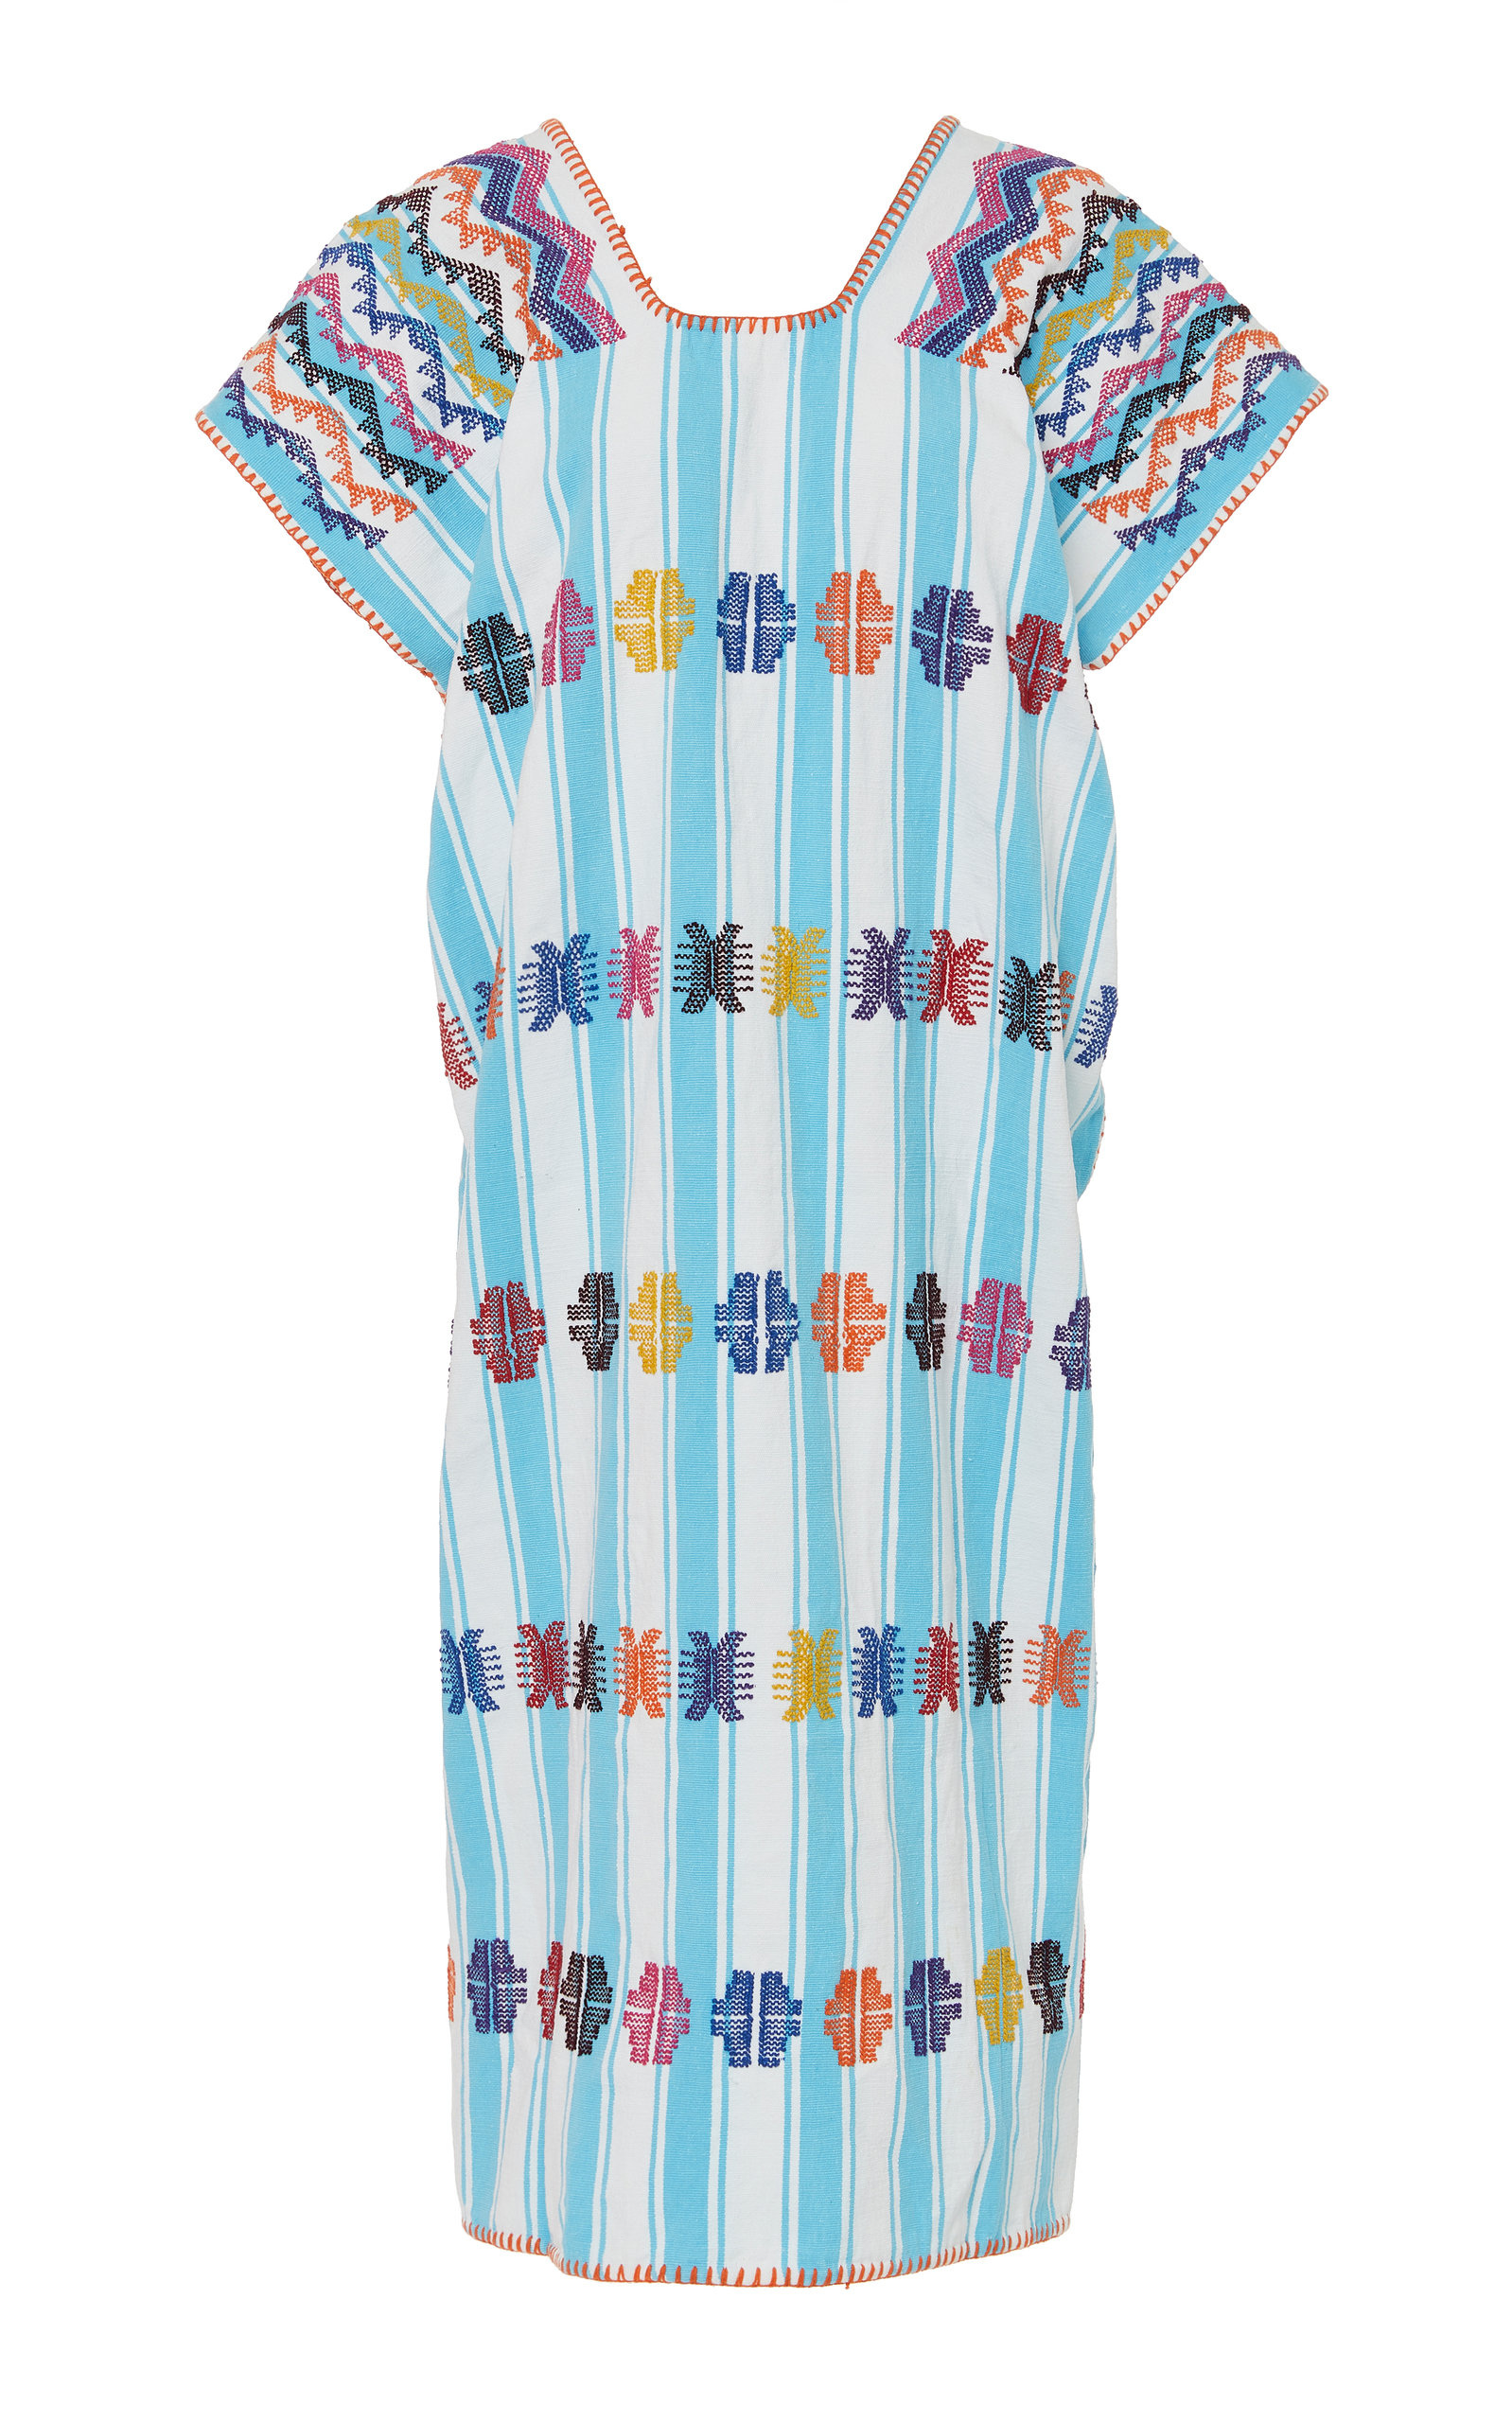 Pippa Holt Tops EMBROIDERED STRIPED COTTON CAFTAN